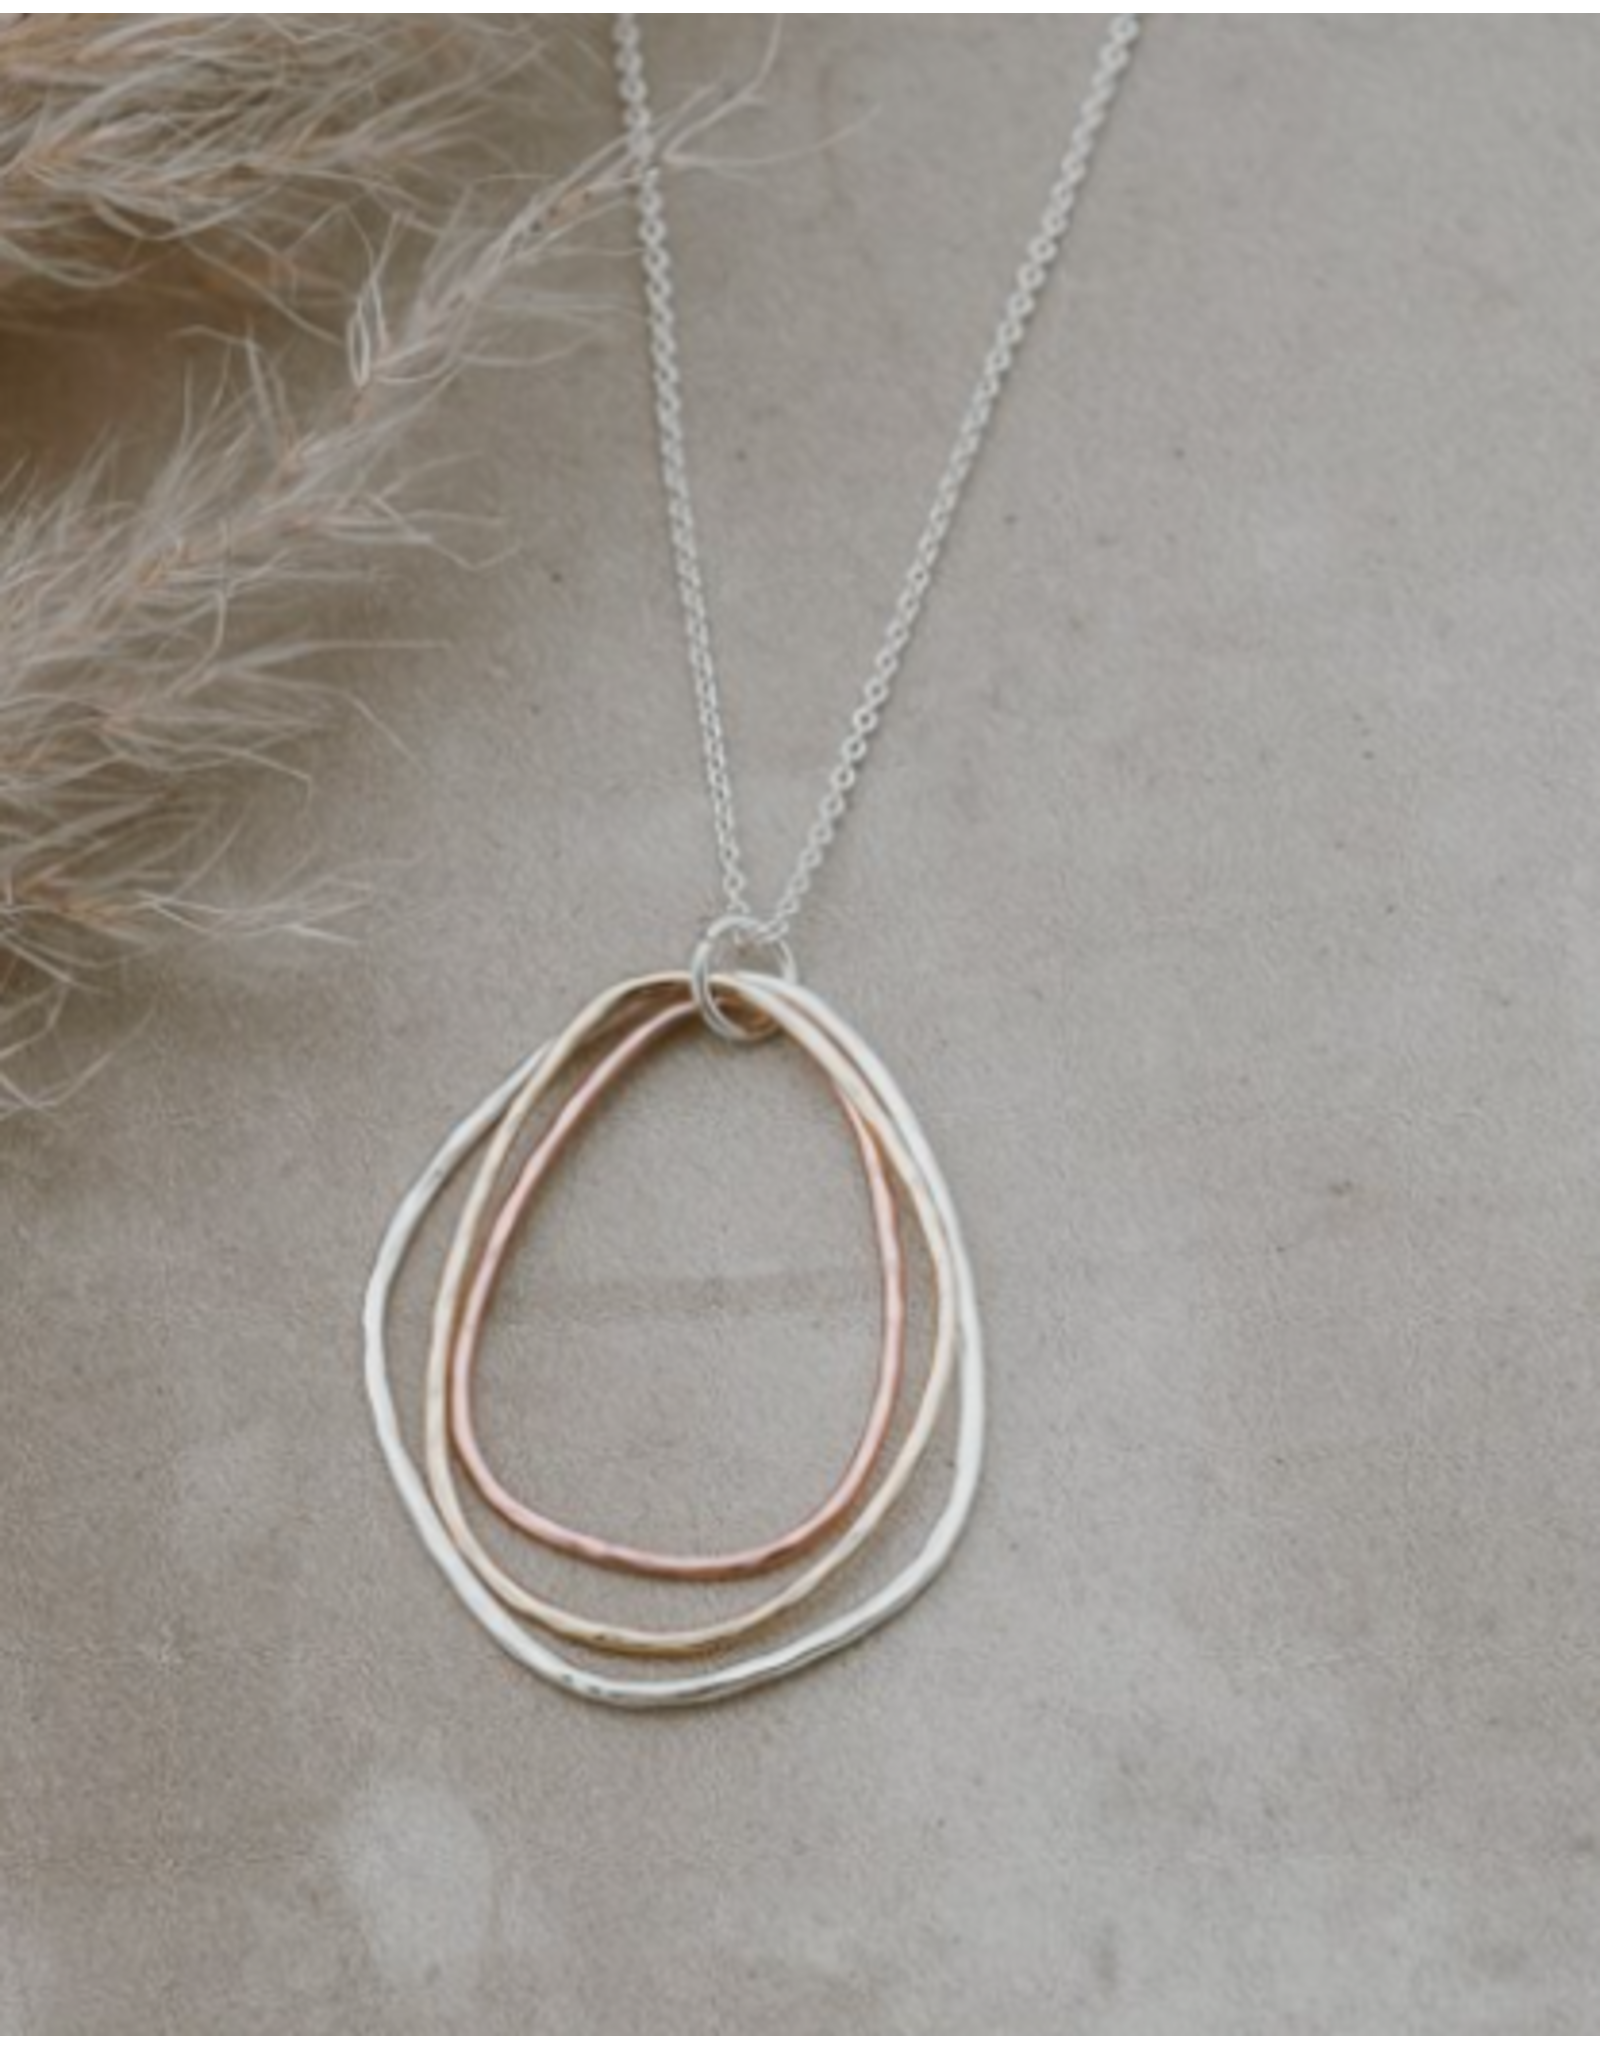 Glee jewelry Noa Necklace, Silver/Rose Gold/Gold